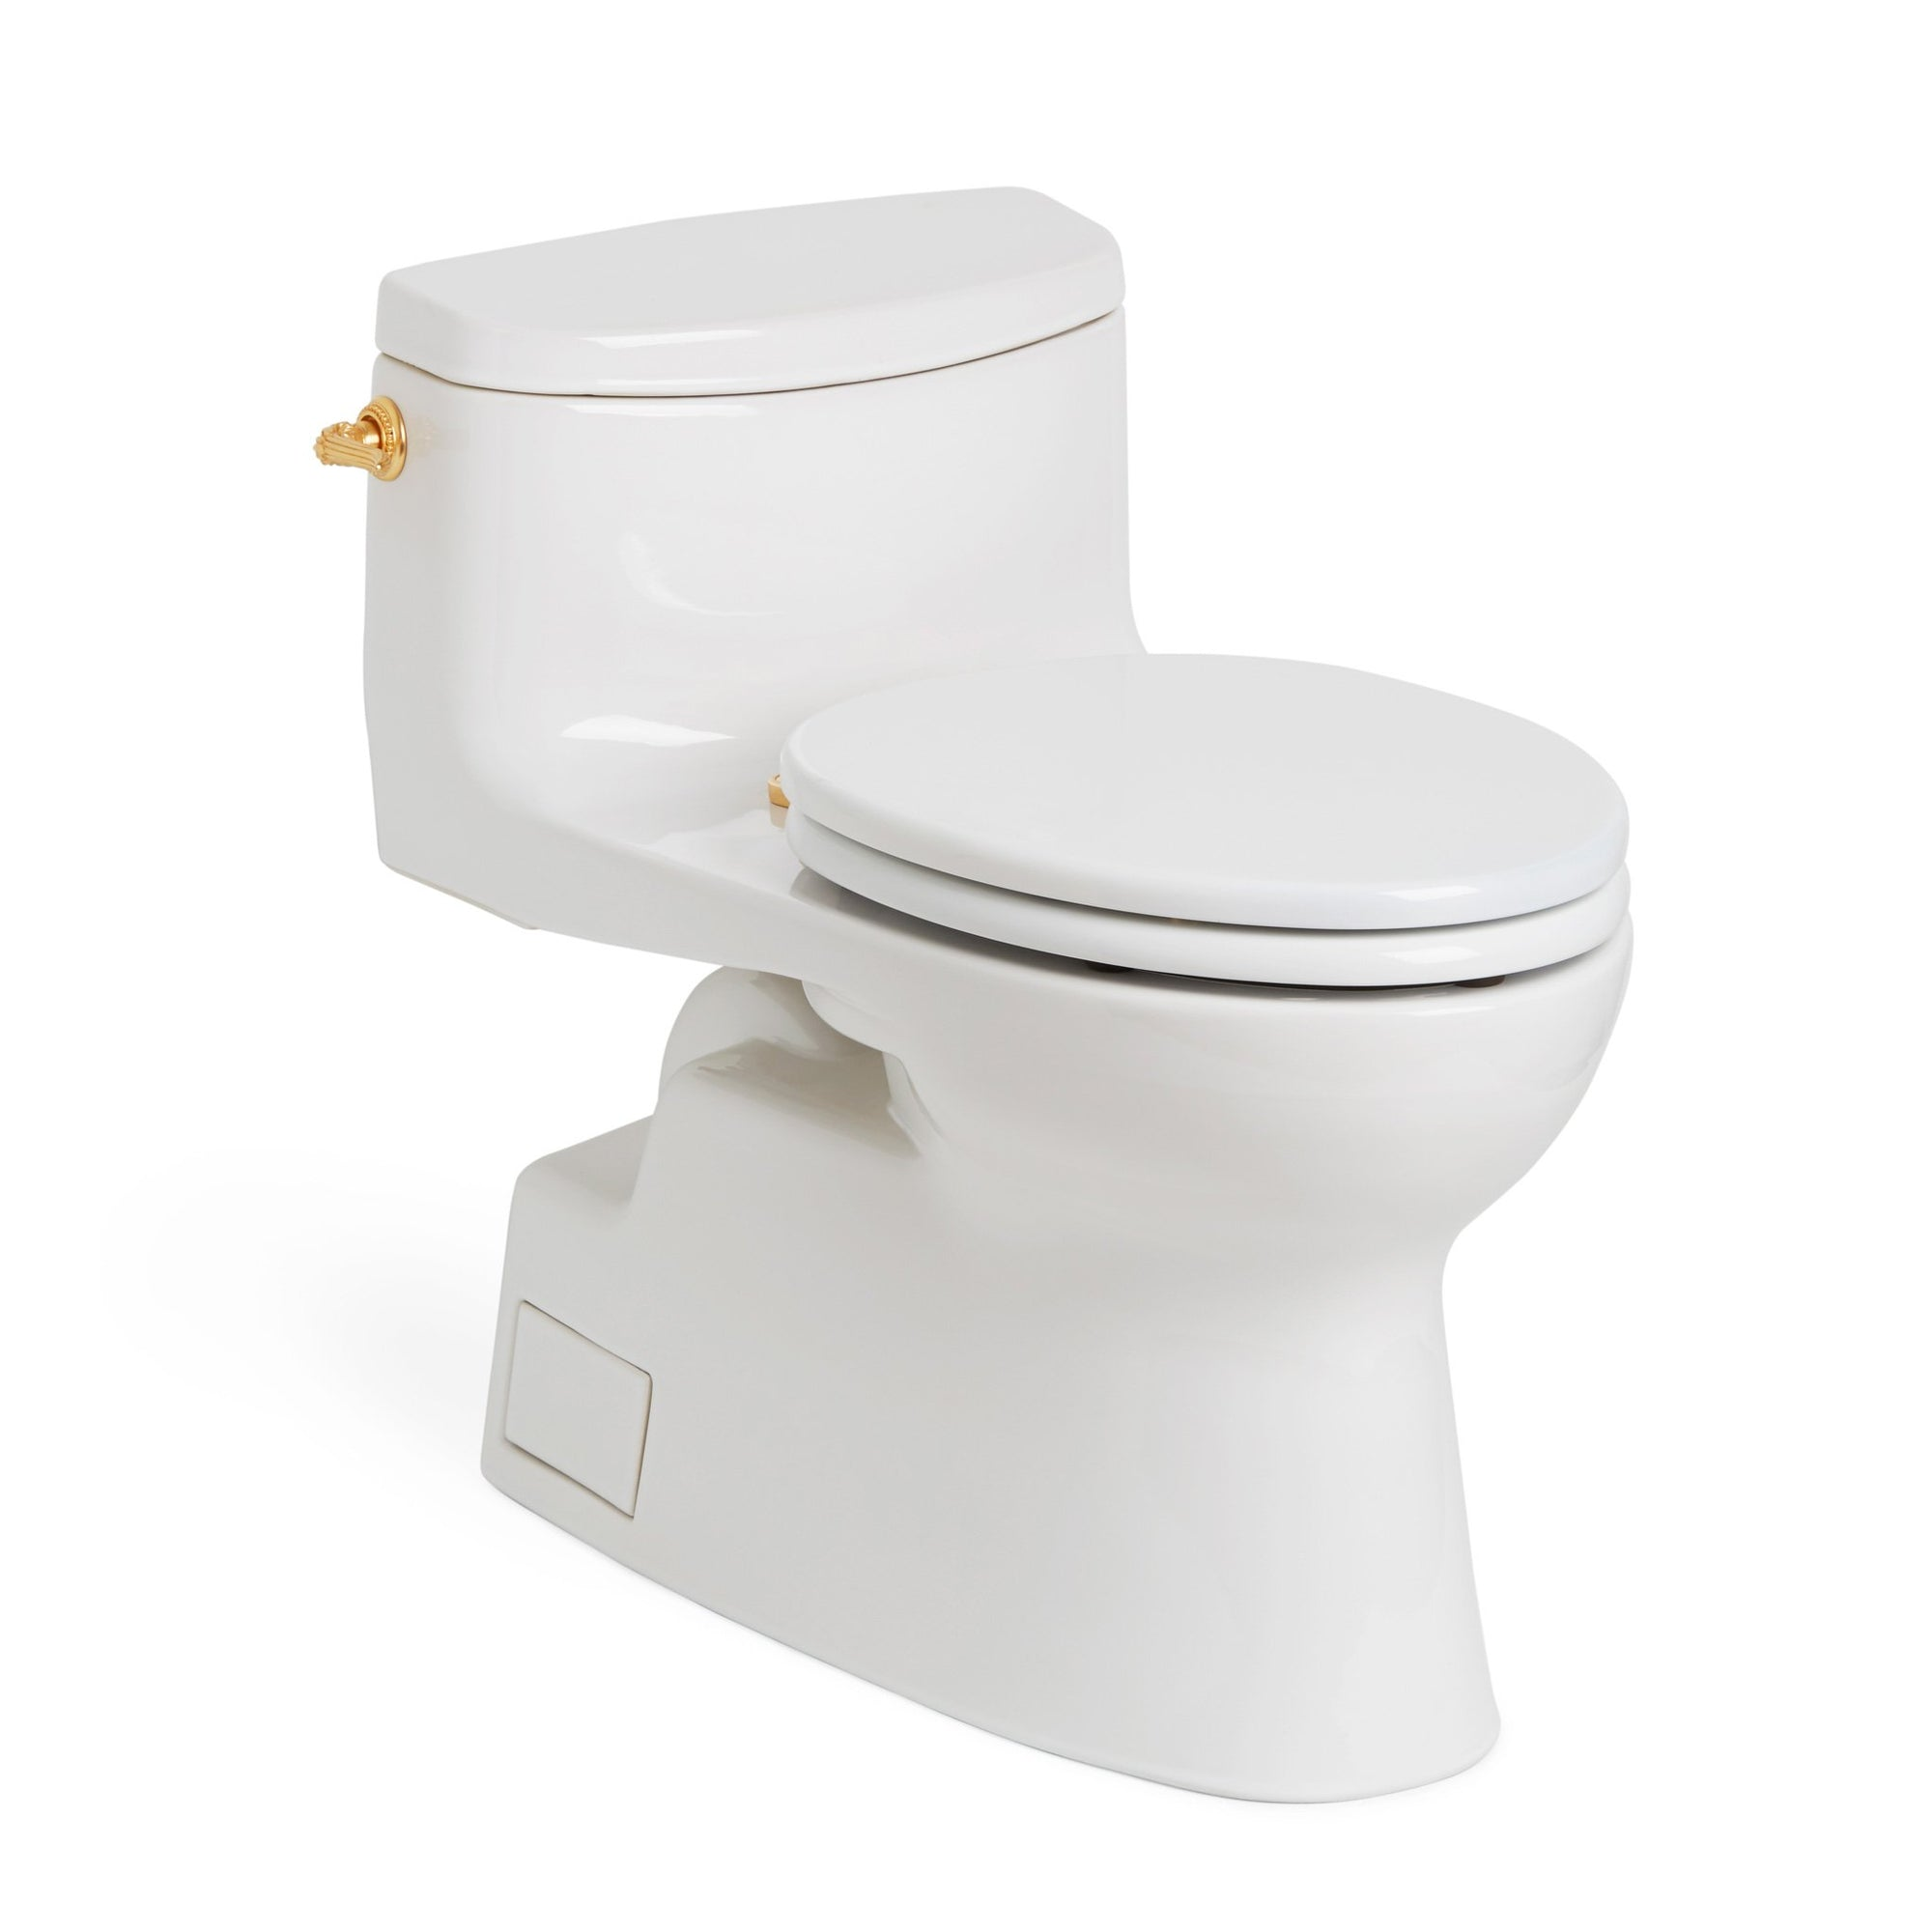 0234EL-WHT Sherle Wagner International White Glazed Ceramic Toilet